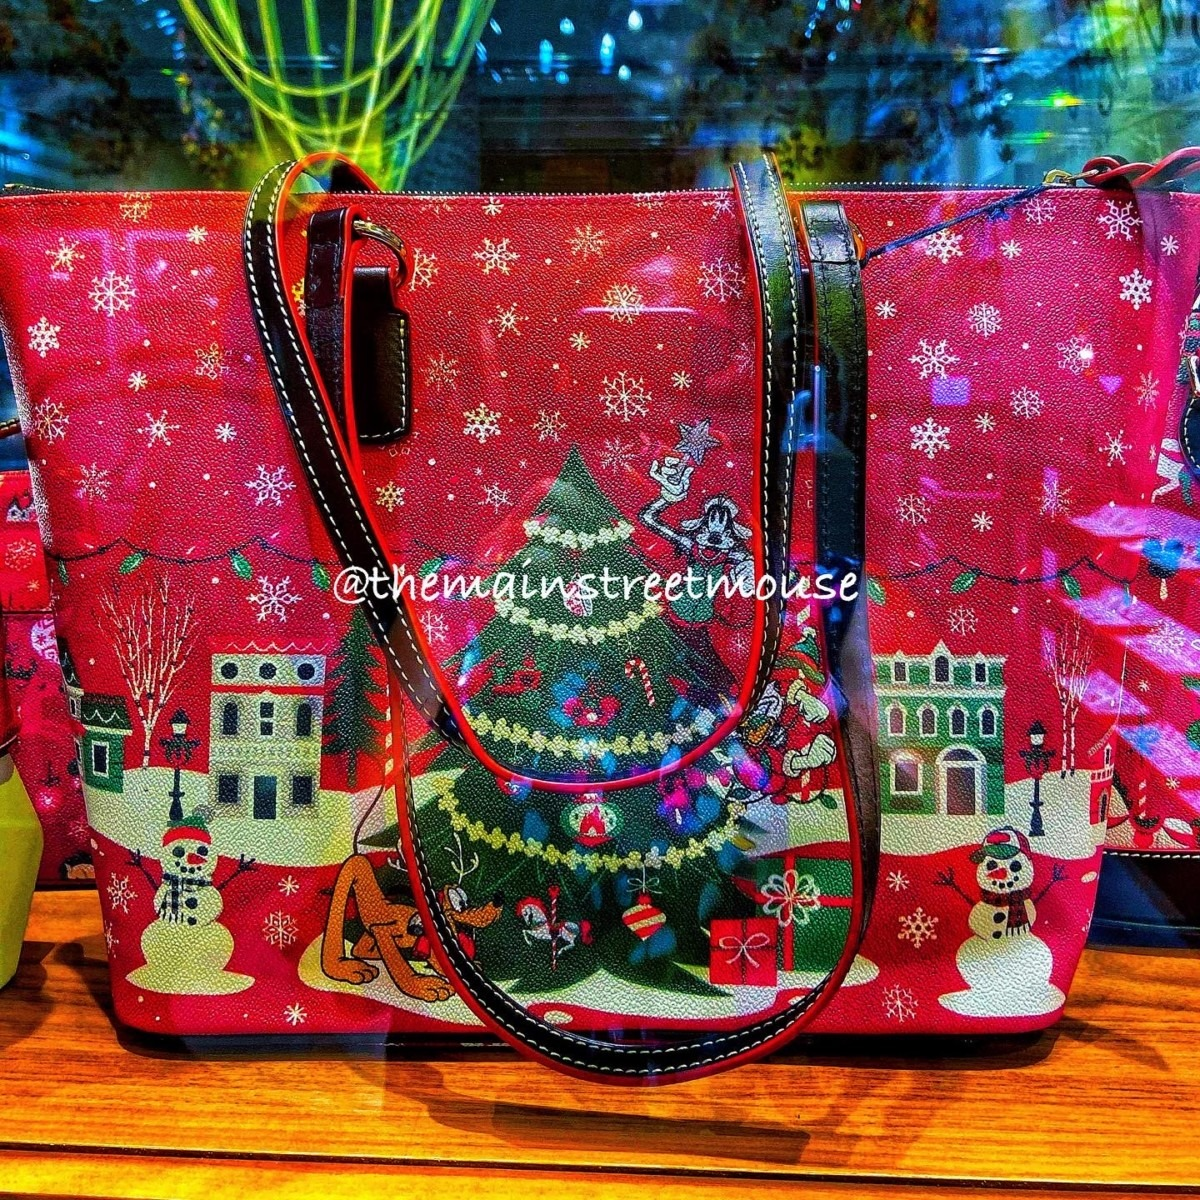 The Holiday Disney Dooney & Bourke Bags are Available Friday! 1